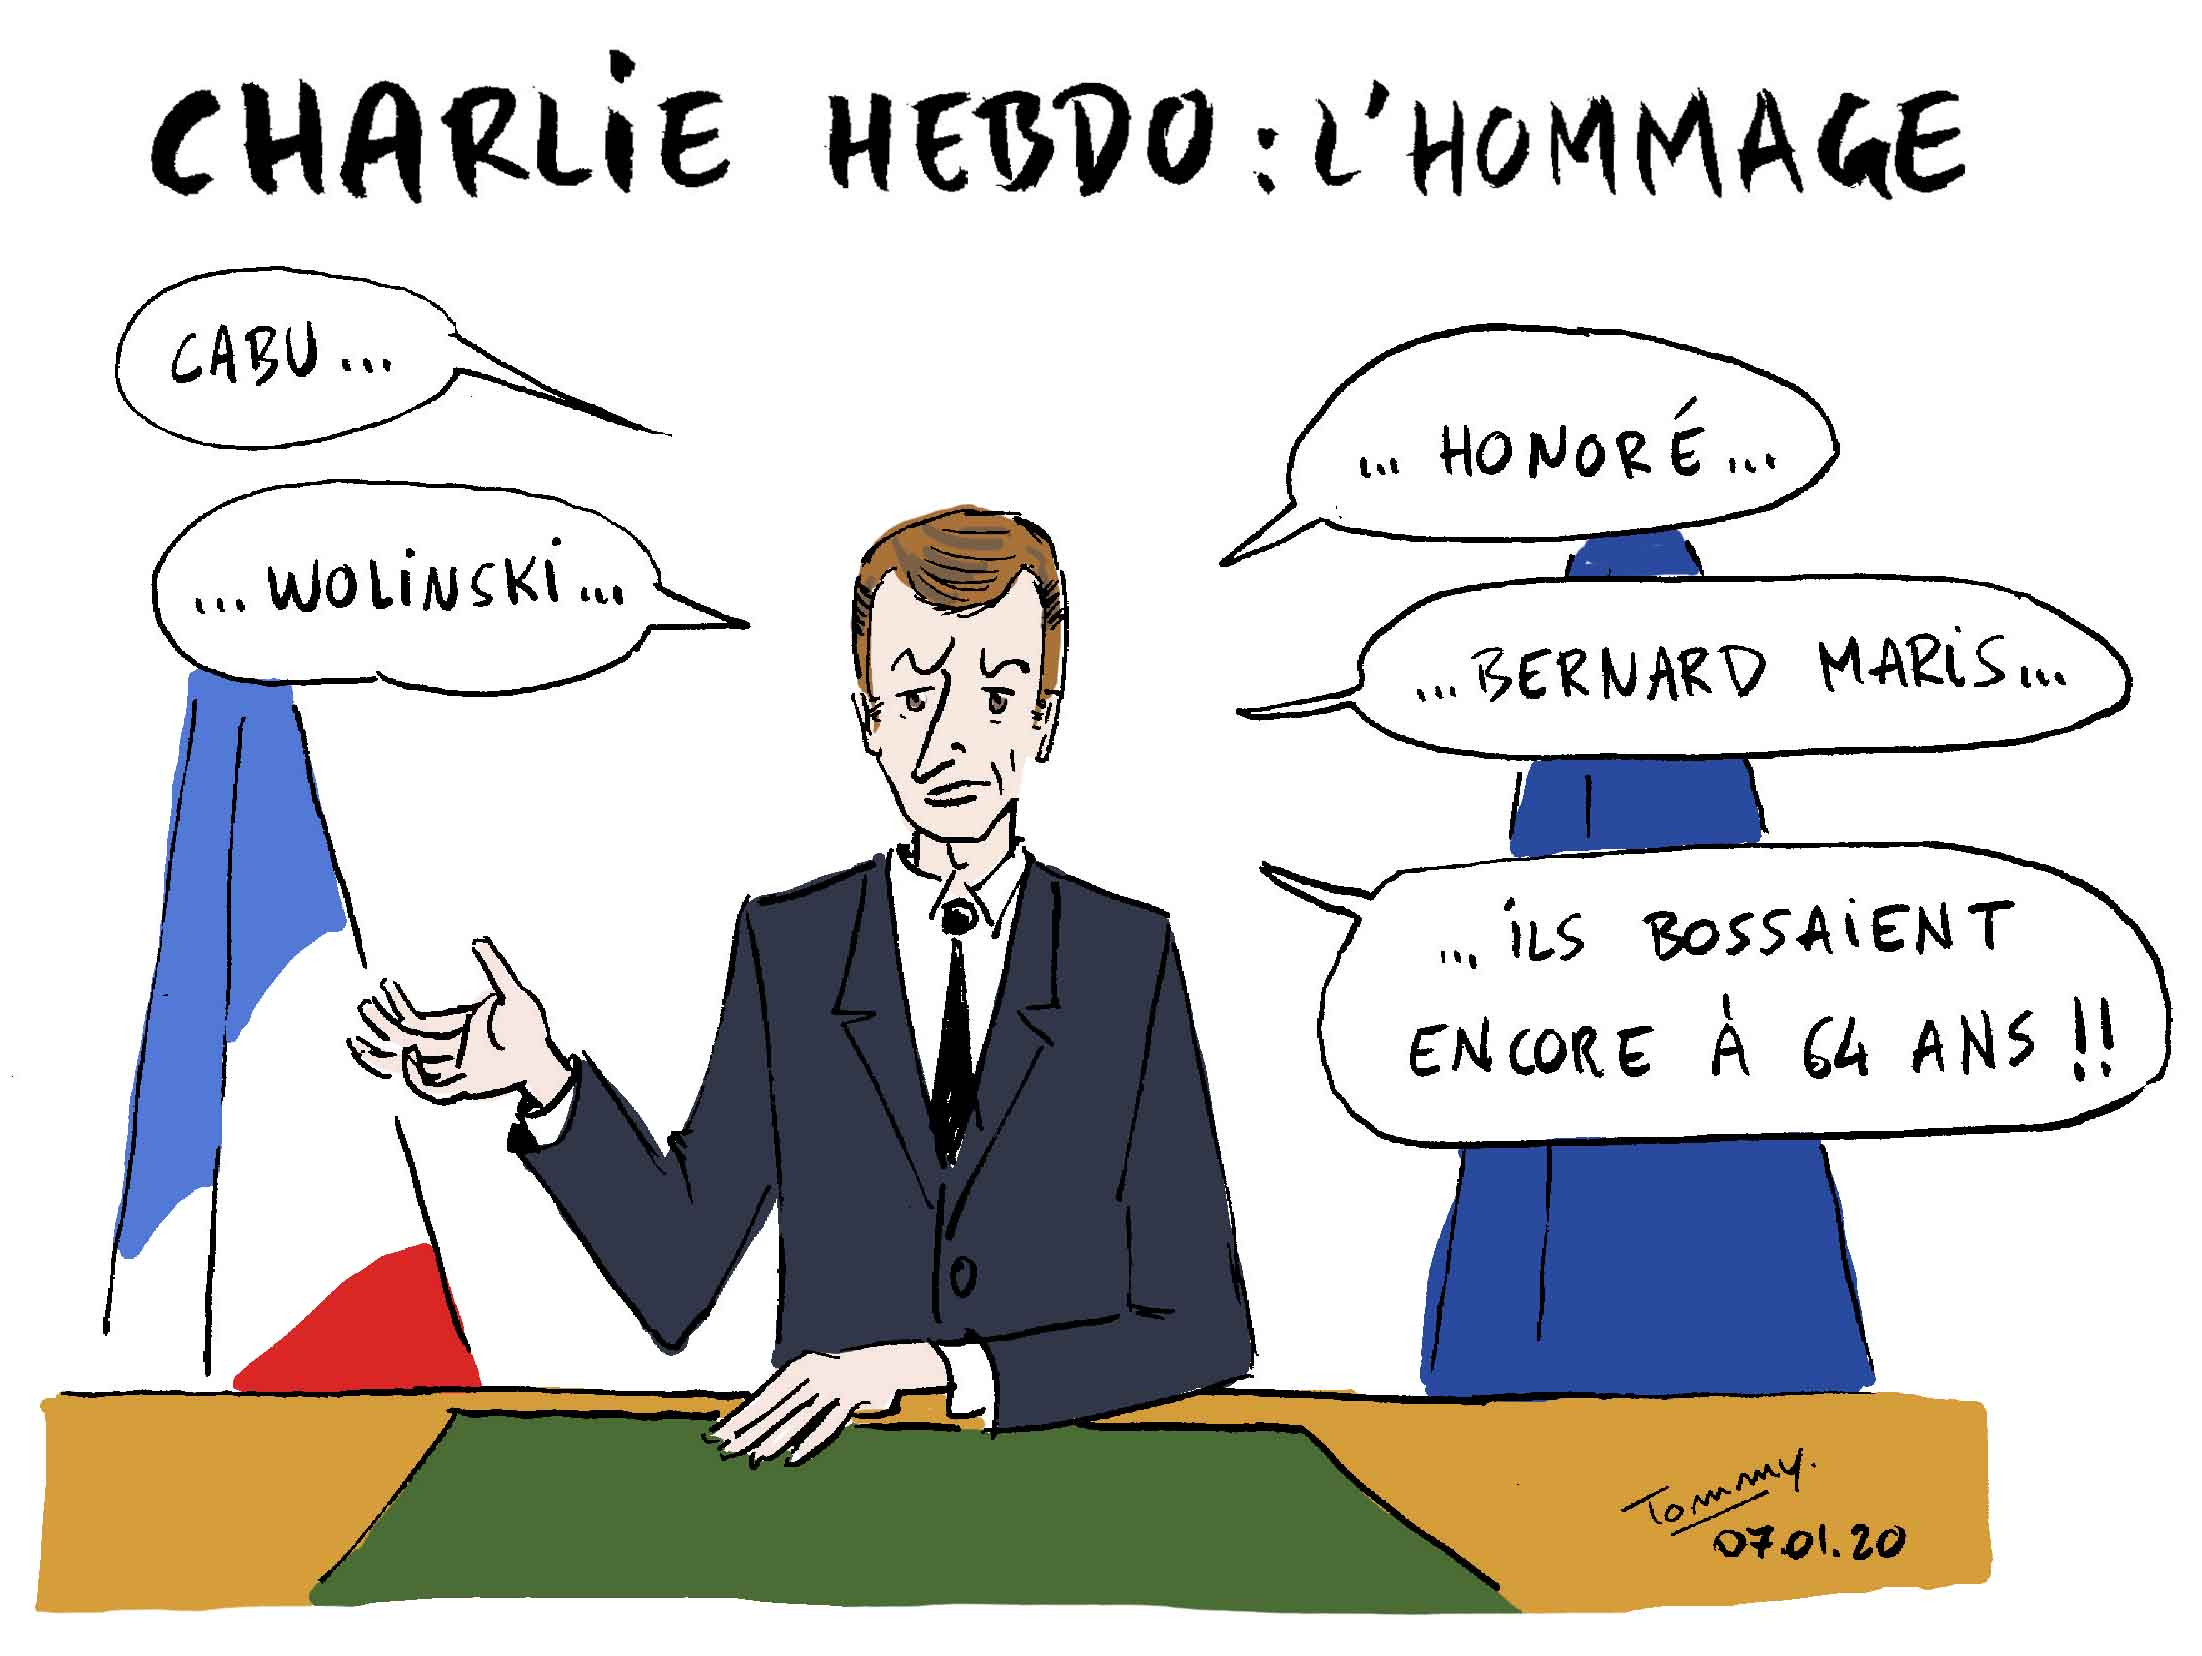 Charlie Hebdo : l'hommage